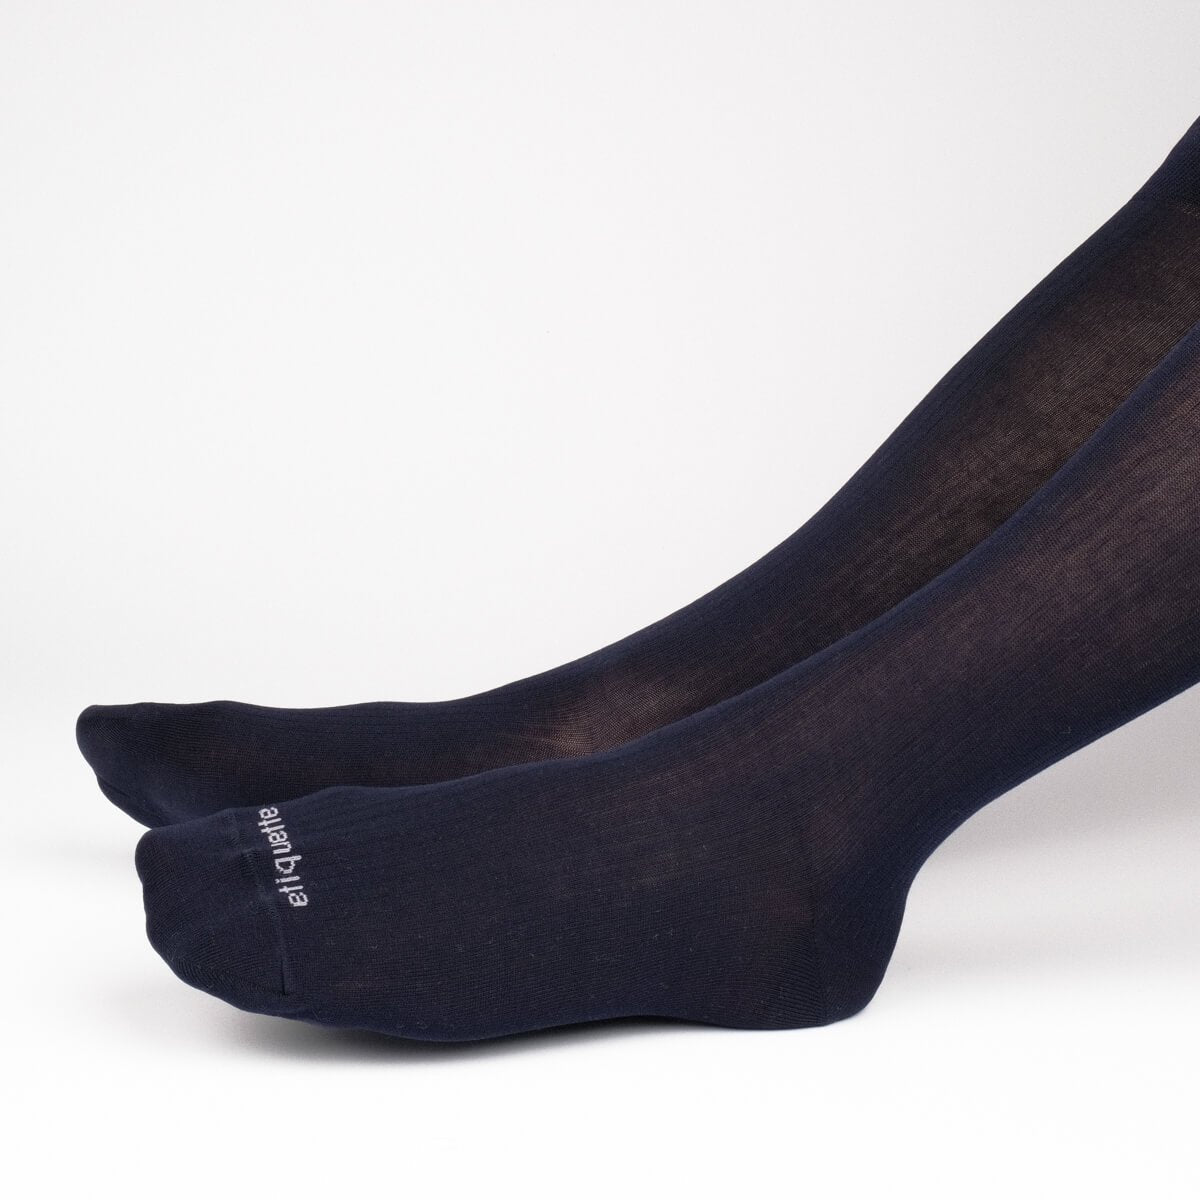 Basic Luxuries Knee High Ribbed - Dark Blue - Mens Socks | Etiquette Clothiers Global Official